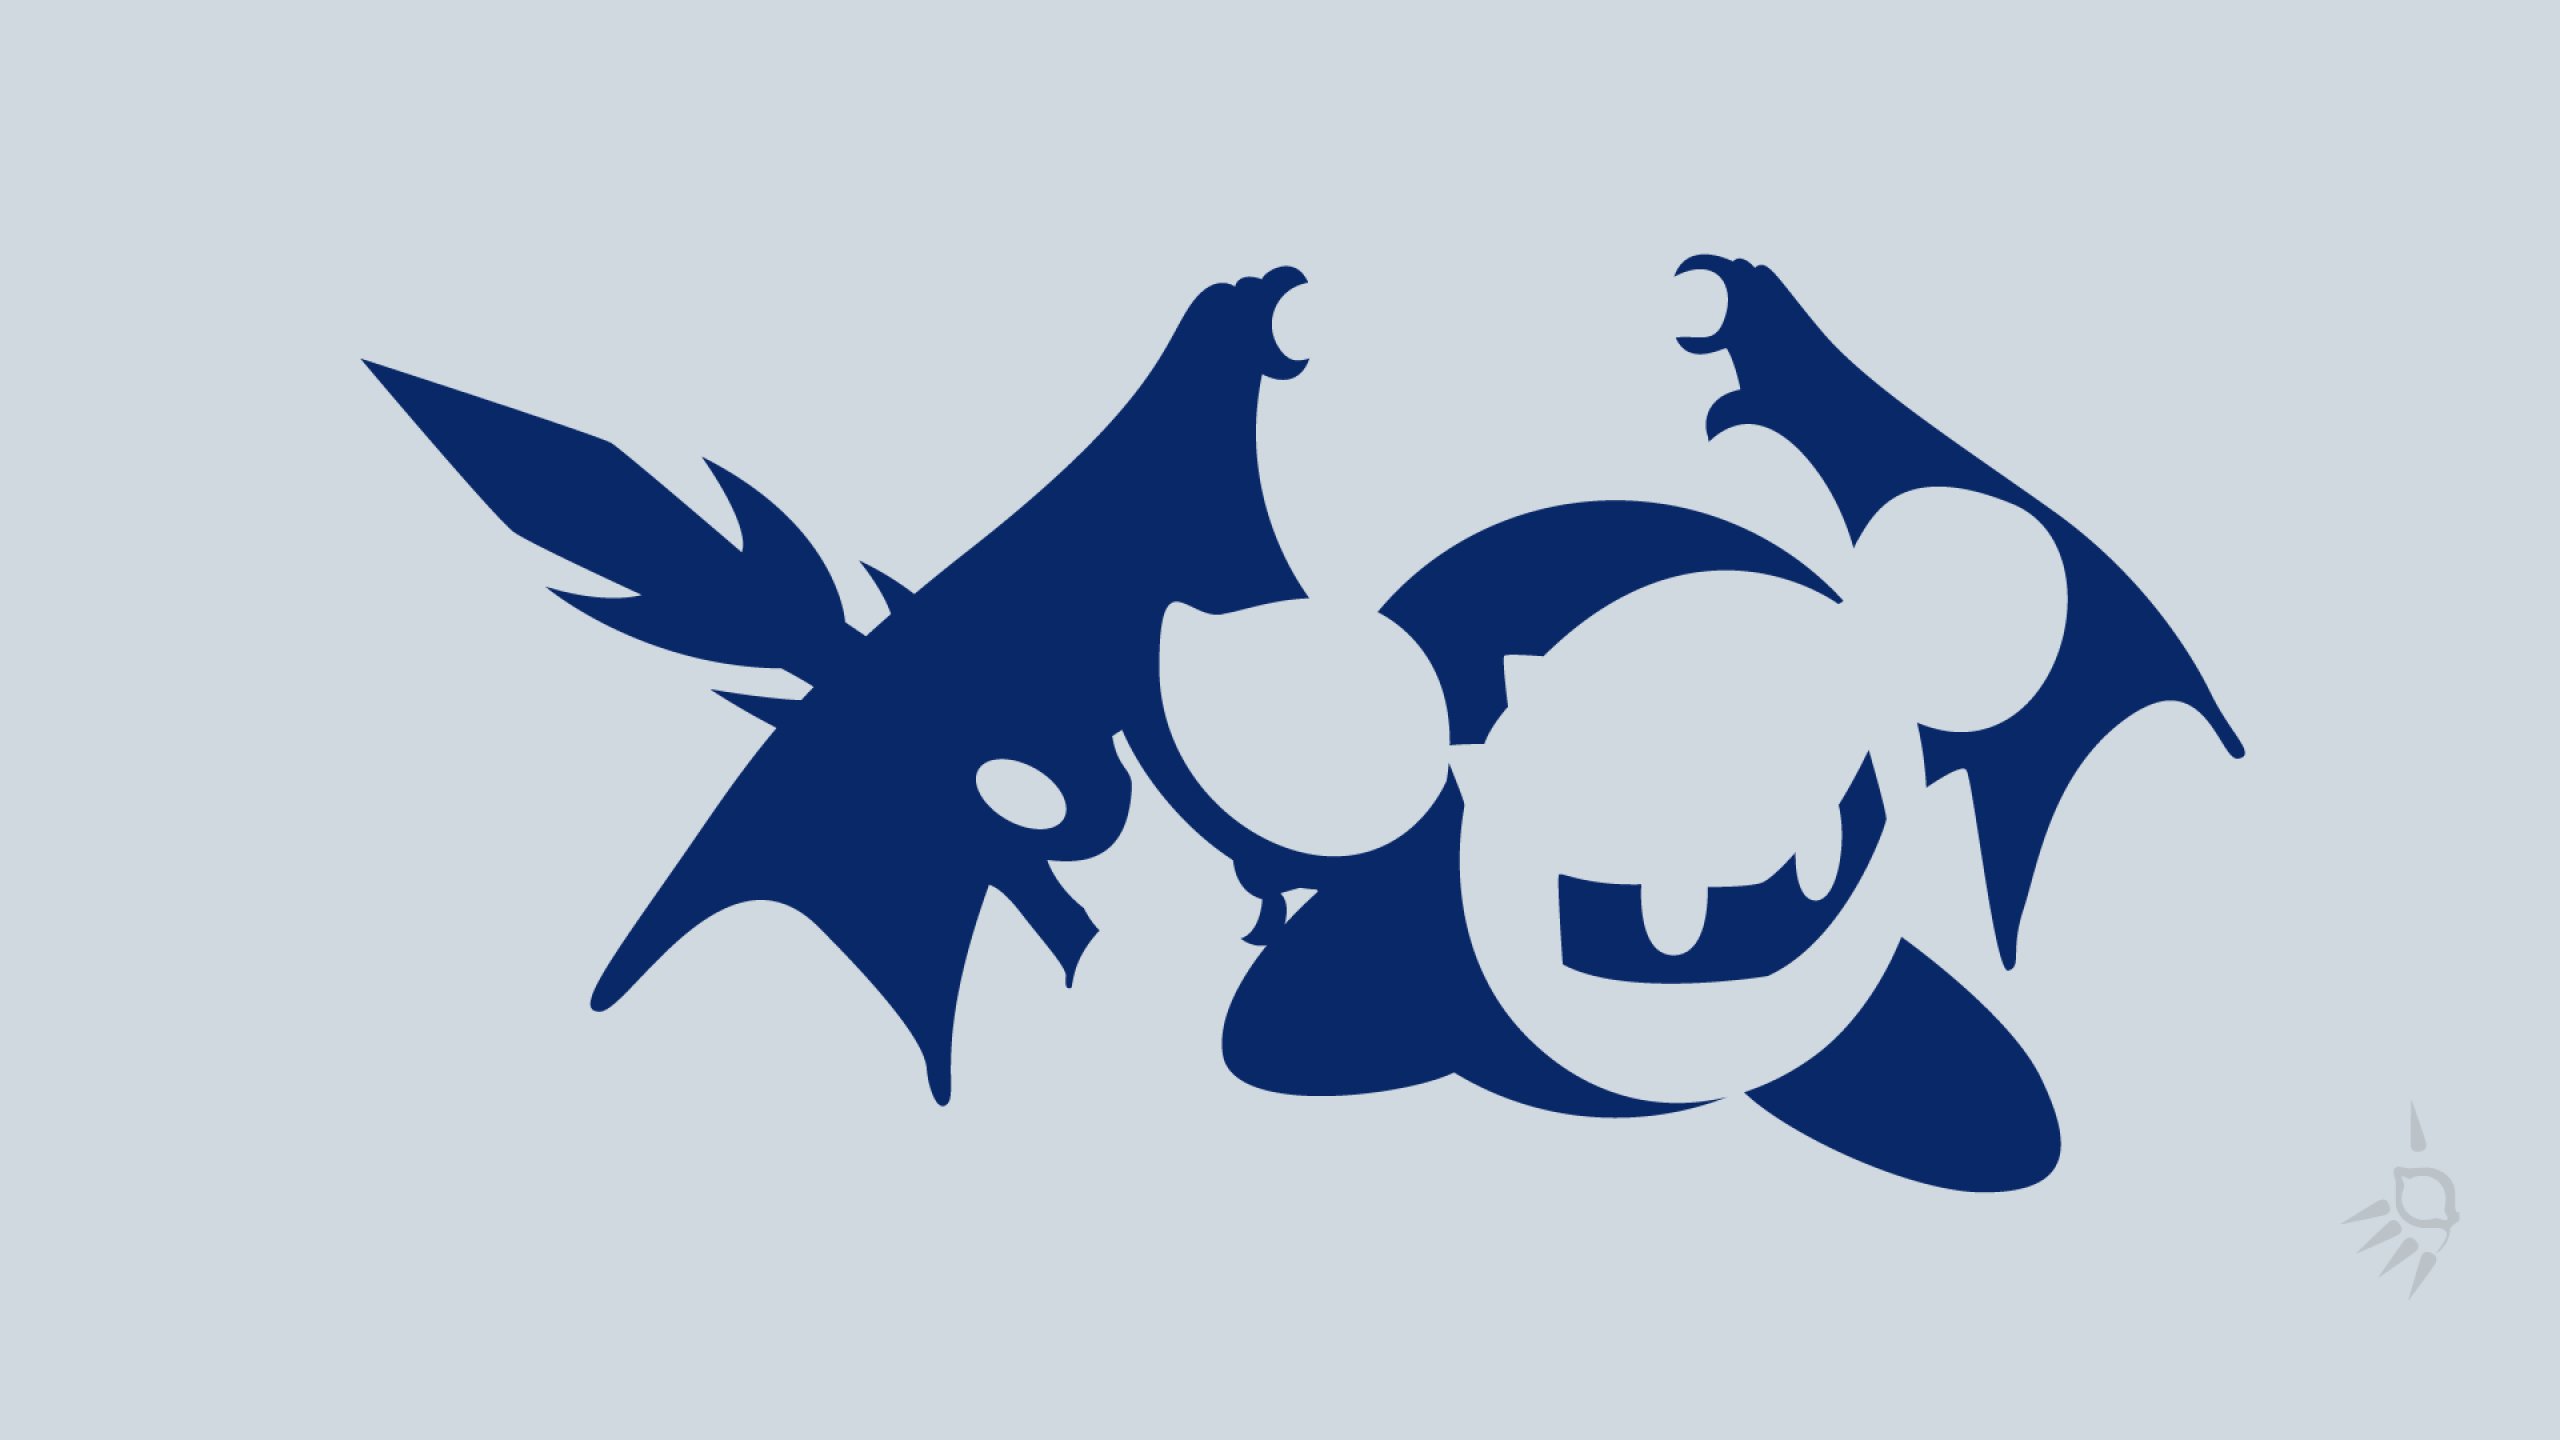 Meta Knight Wallpapers - Wallpaper Cave